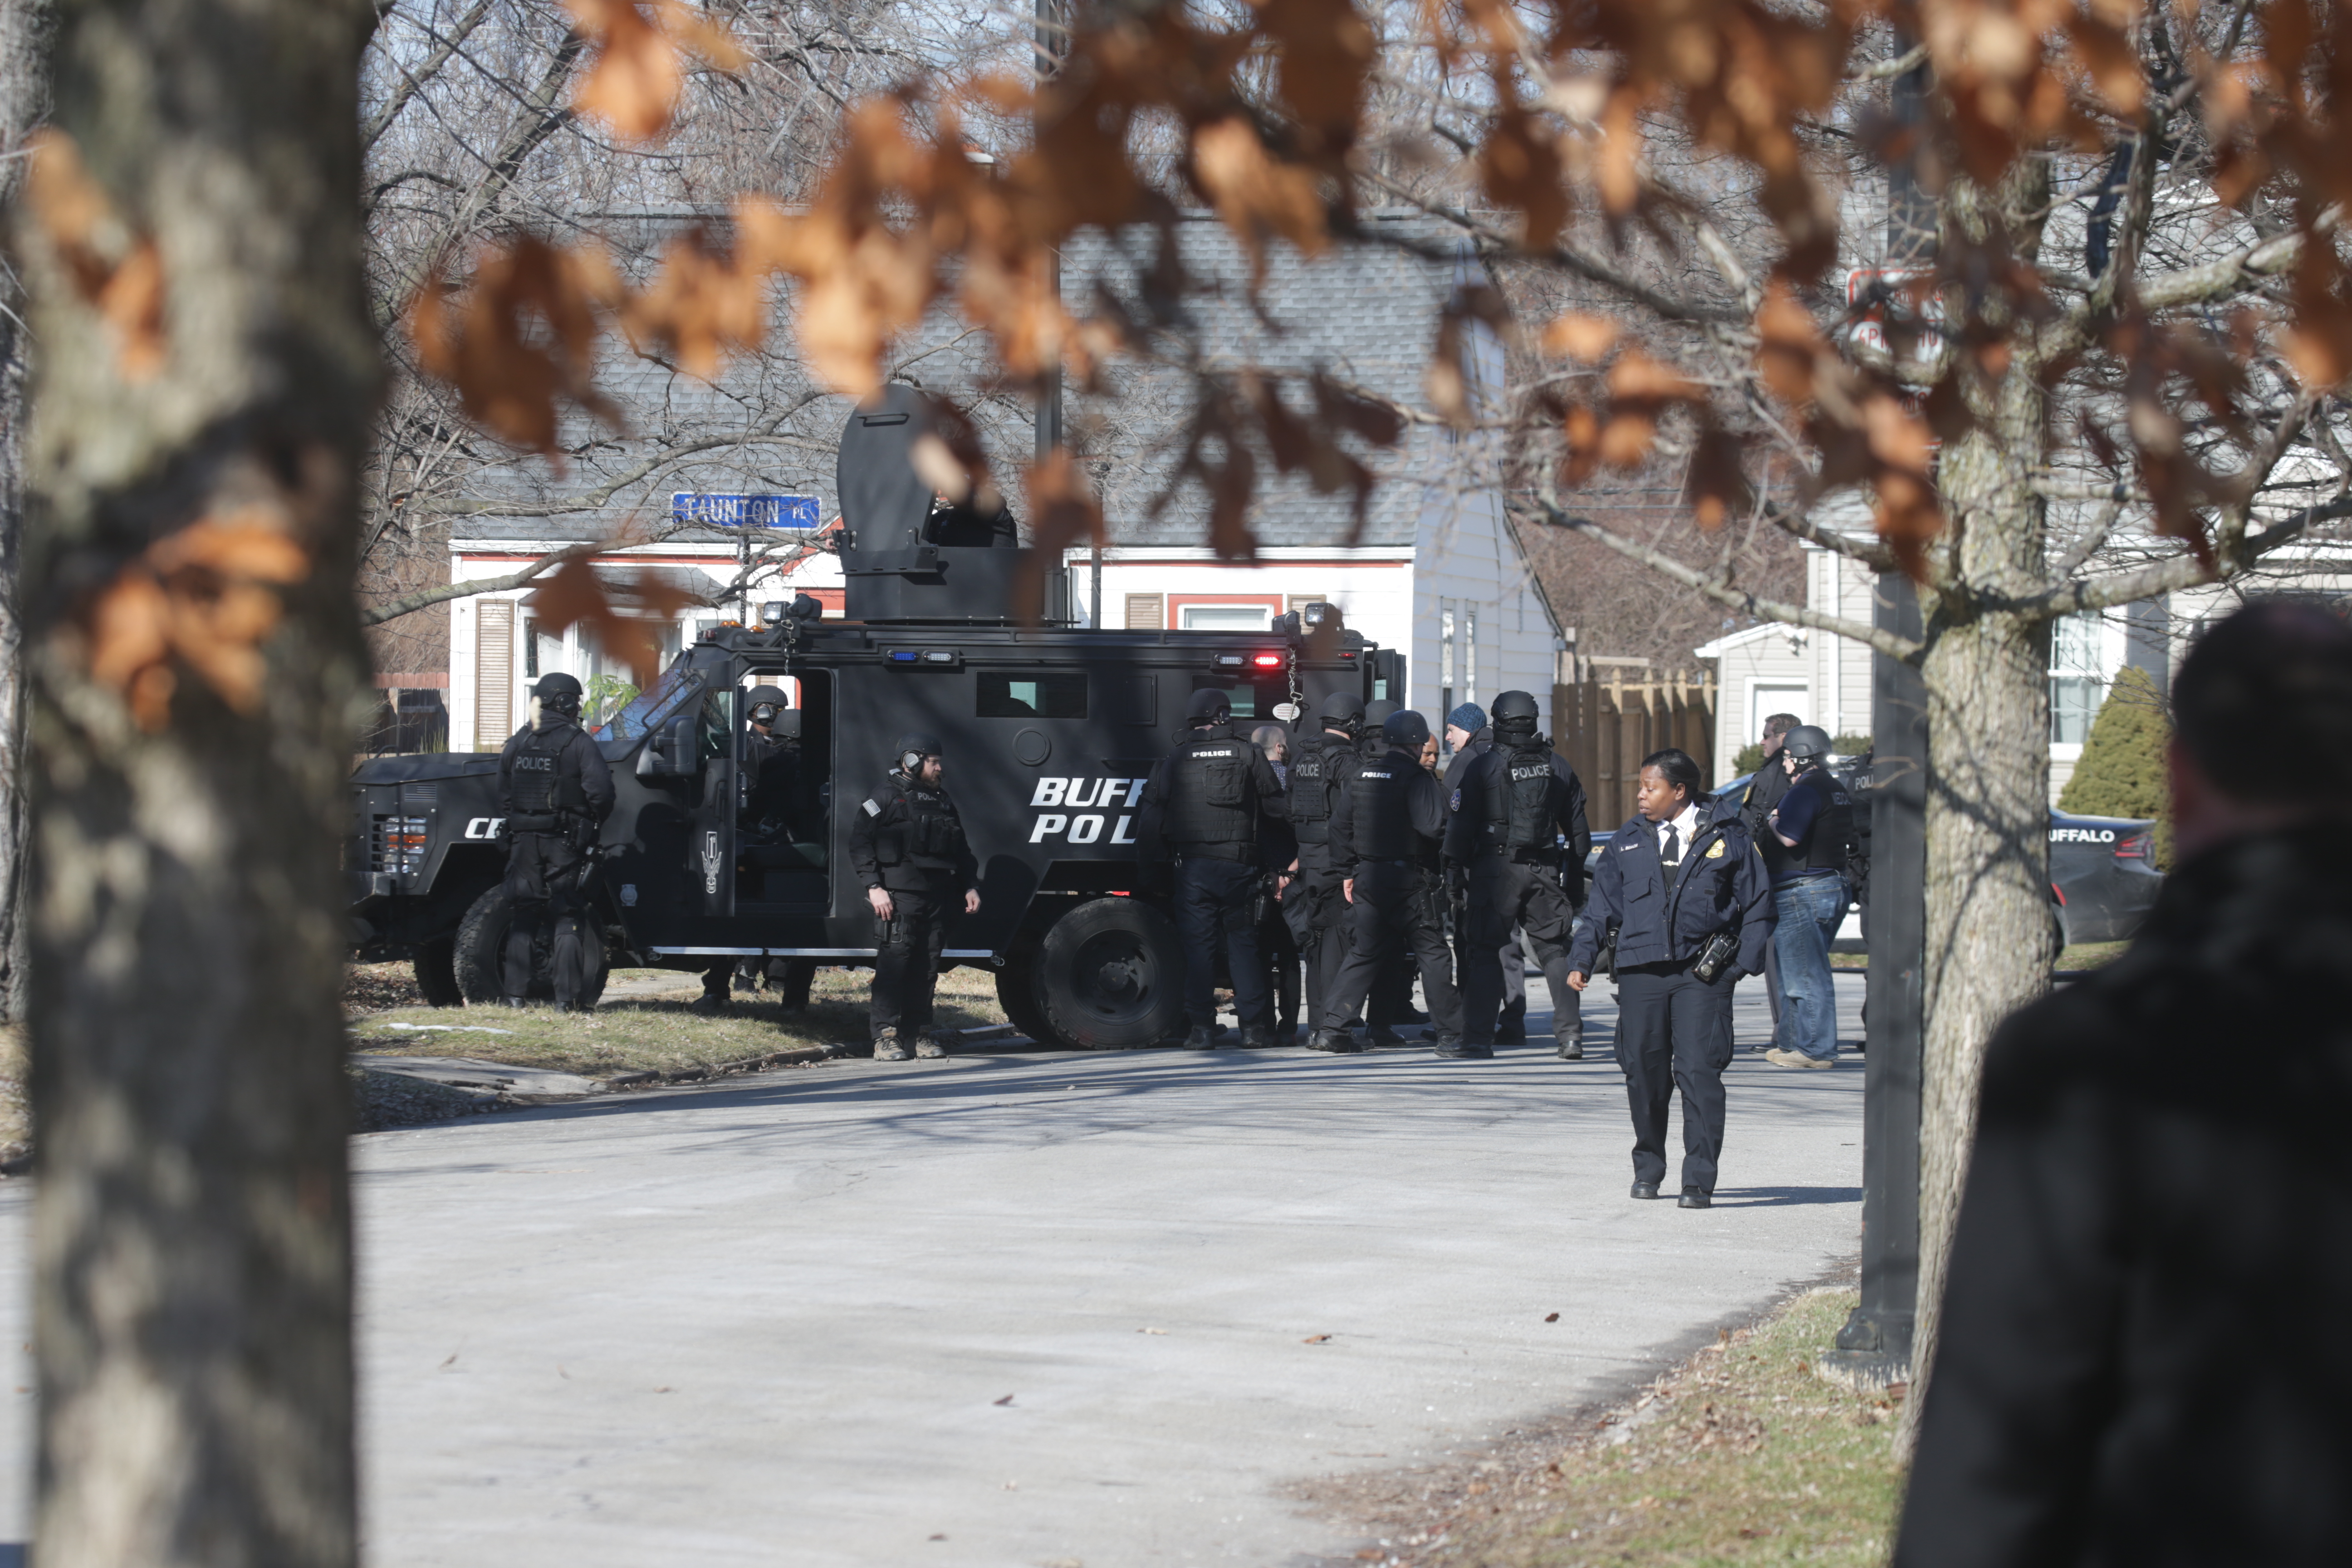 Buffalo Police SWAT Team on location take a man into custody after a family altercation between father and son on Standish Road near corner of Taunton Place, in Buffalo, N.Y. on  Tuesday,  Feb. 14, 2017.  (John Hickey/Buffalo News)